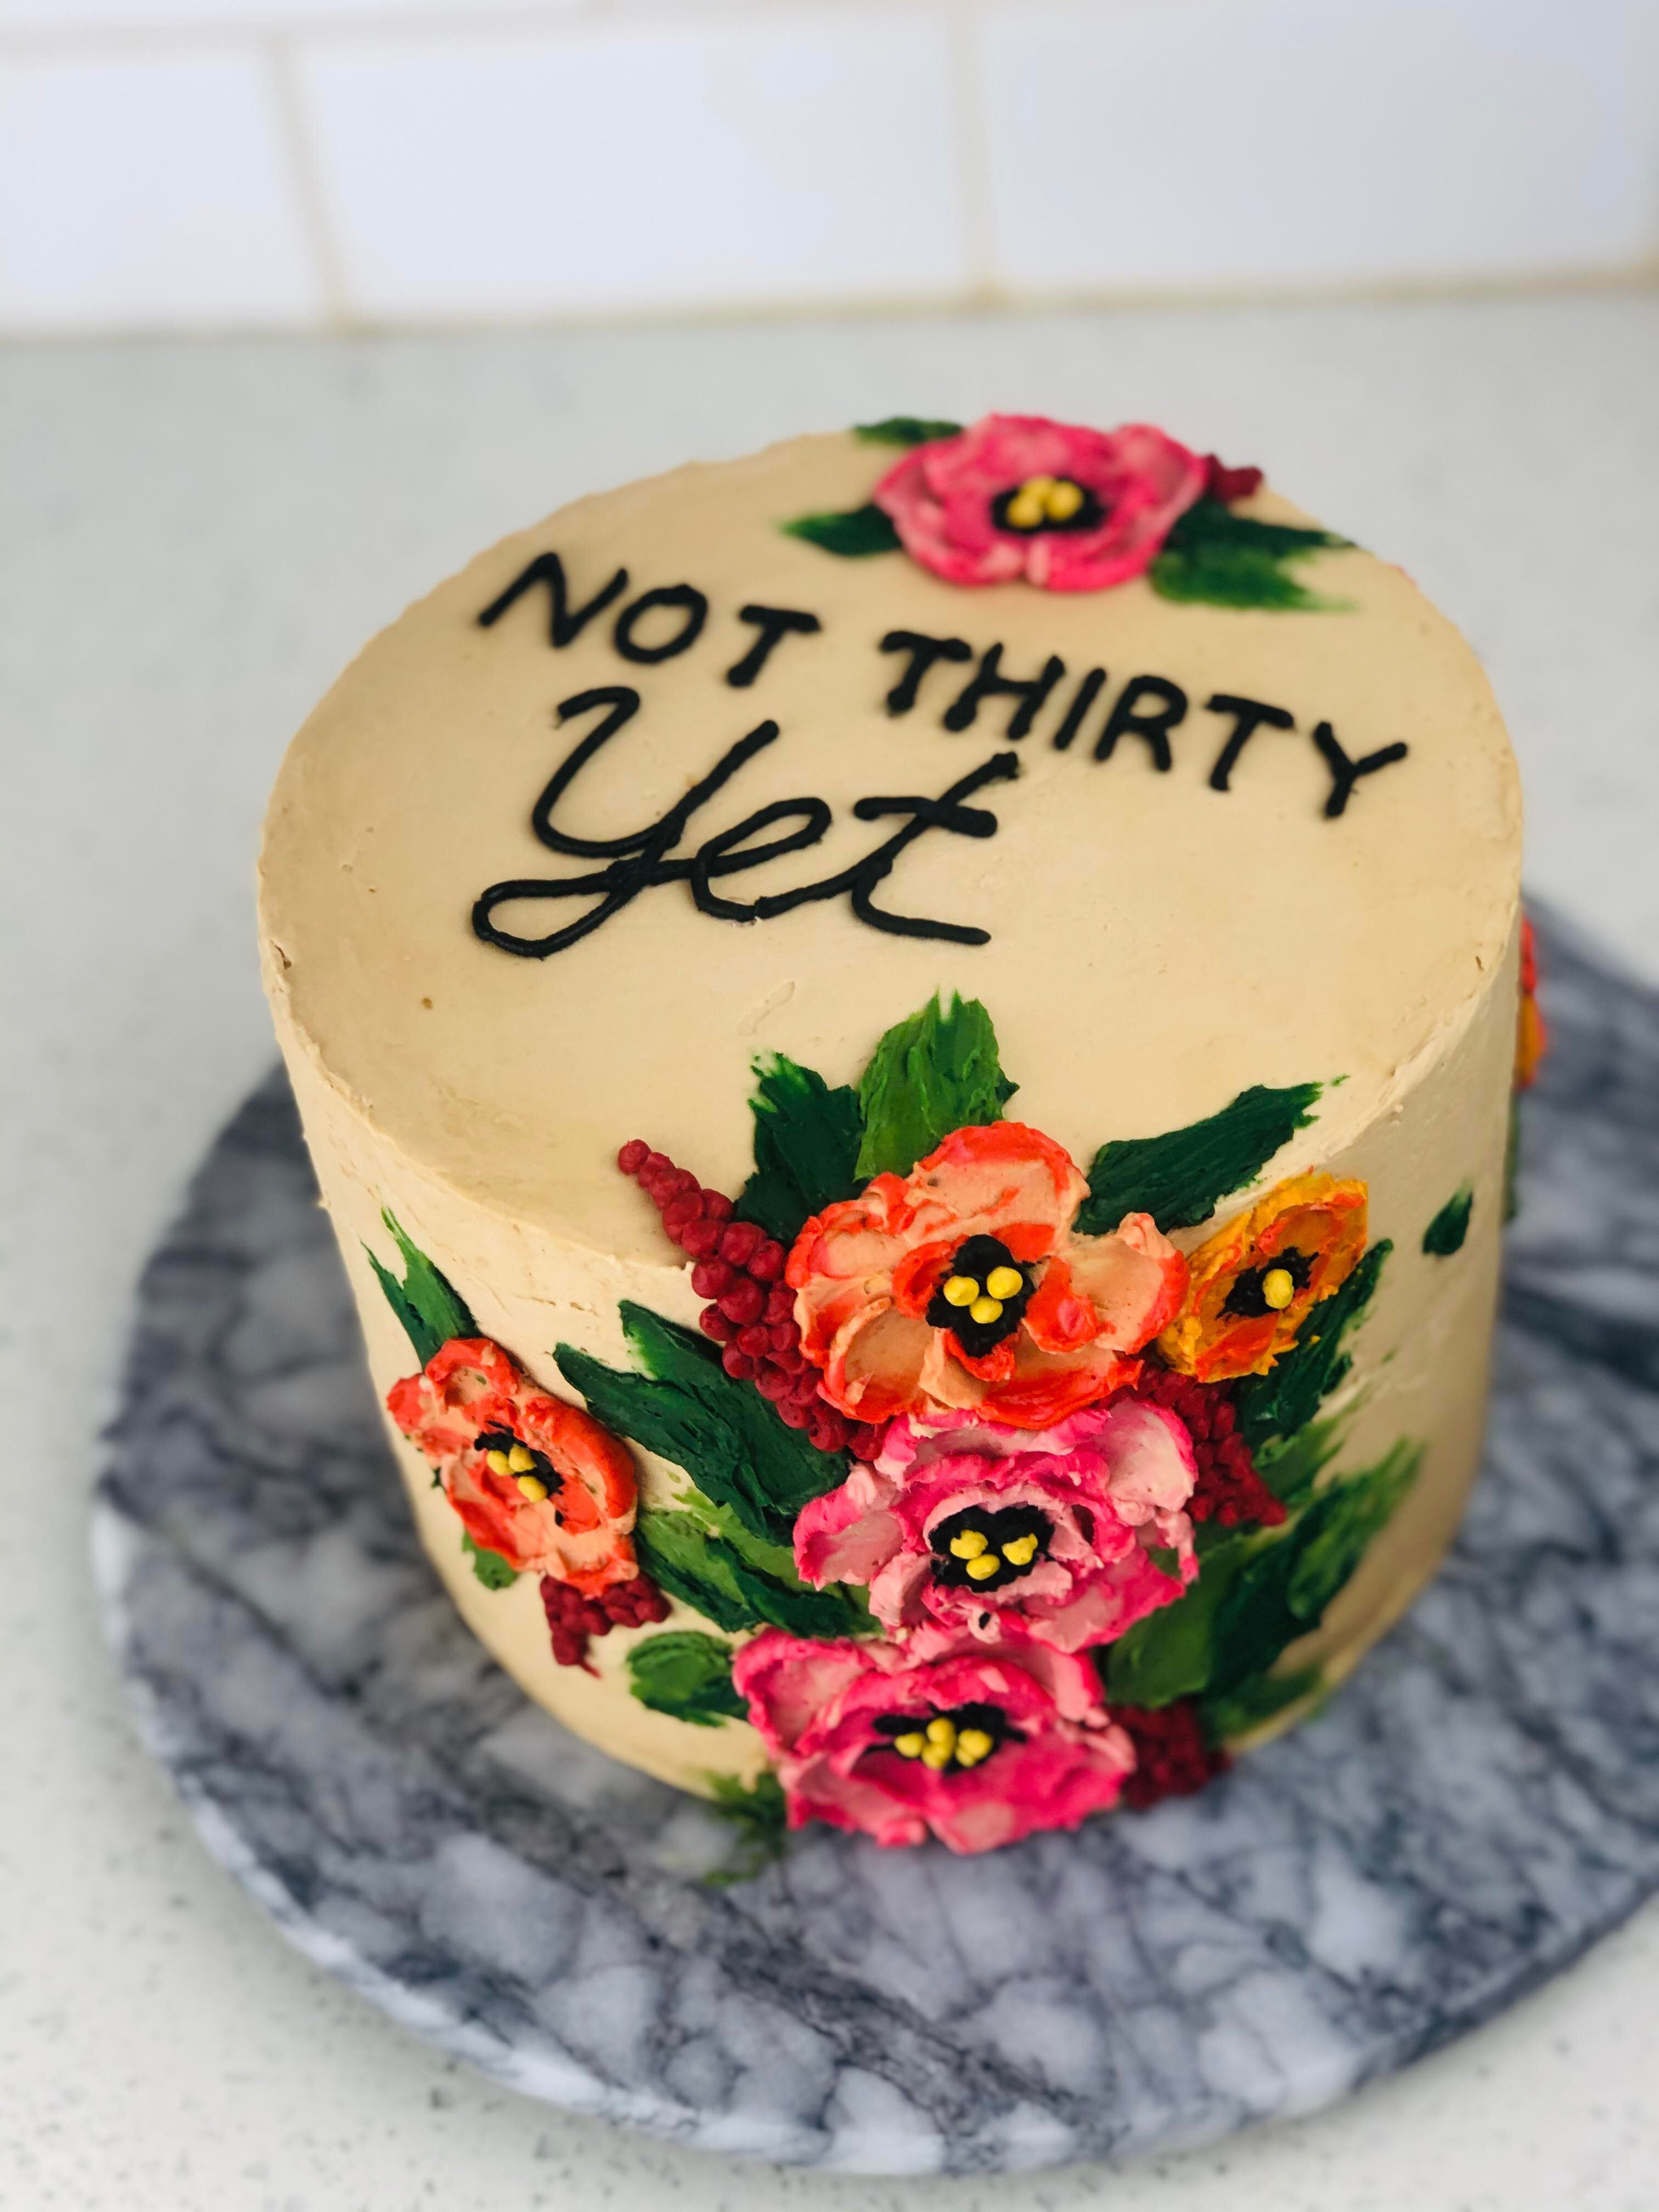 Pin by Teresa Houck on birthday cakes in 2020 29th